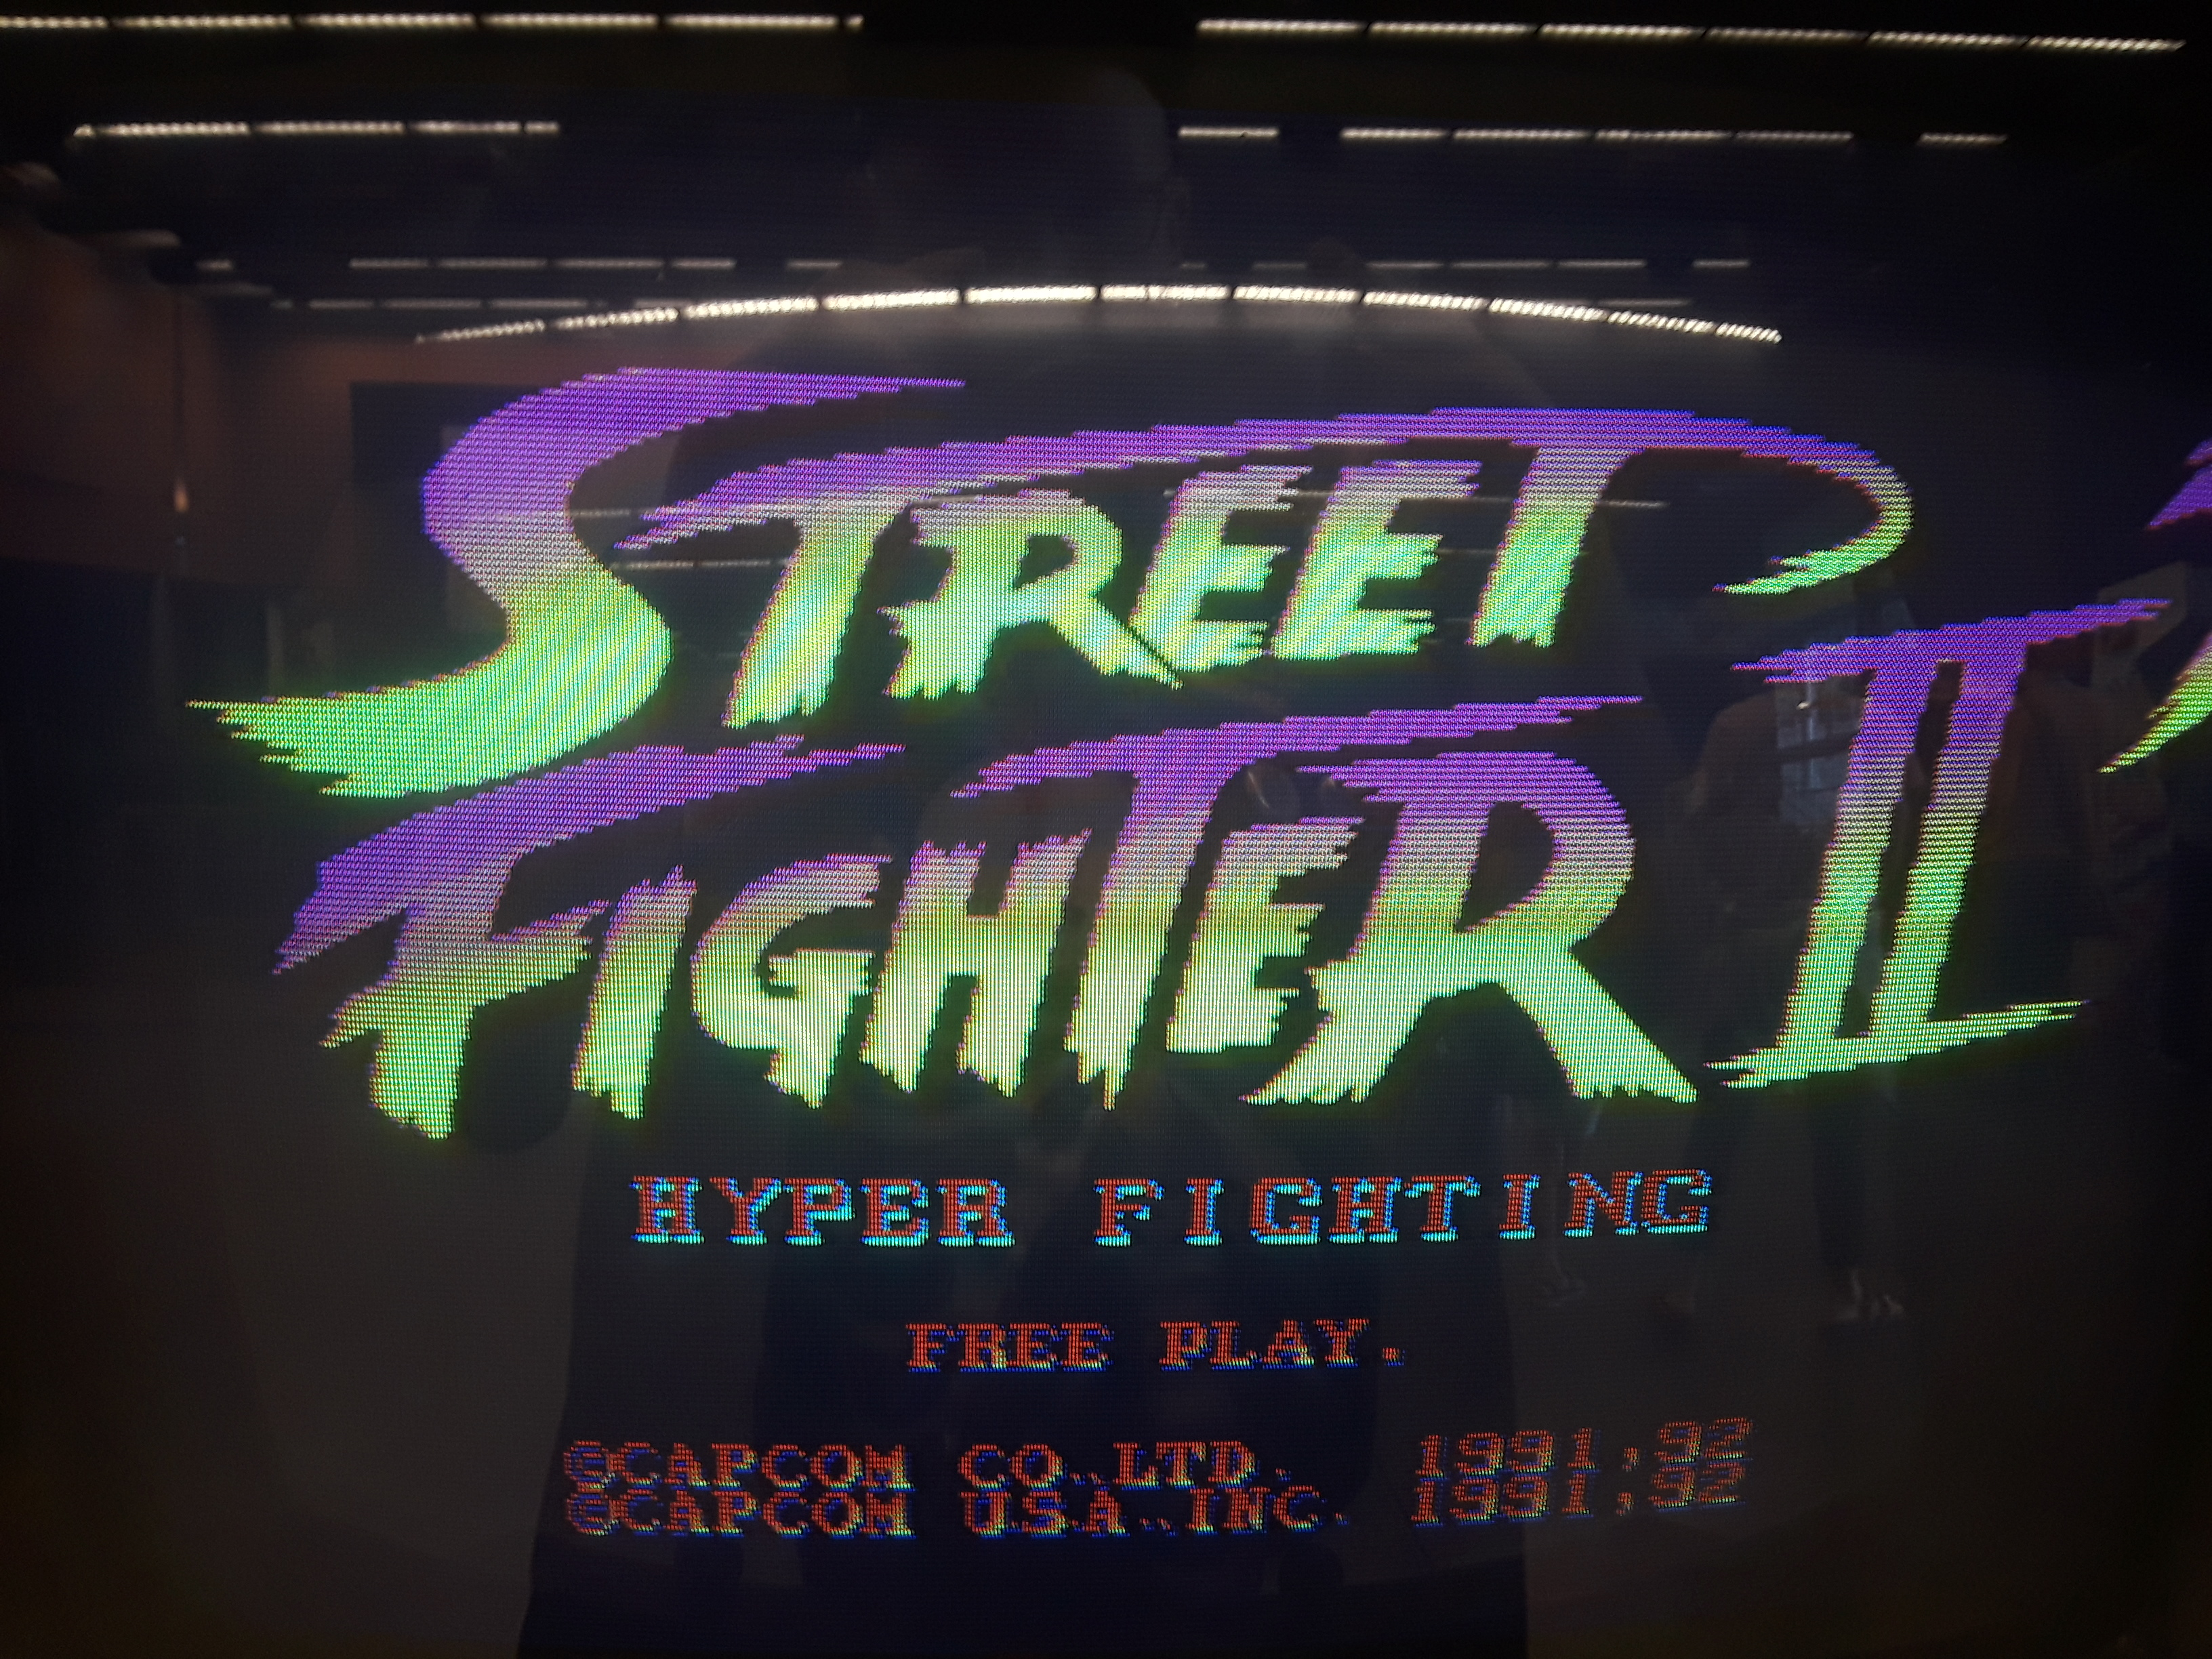 Street Fighter II Turbo: Hyper Fighting 76,500 points